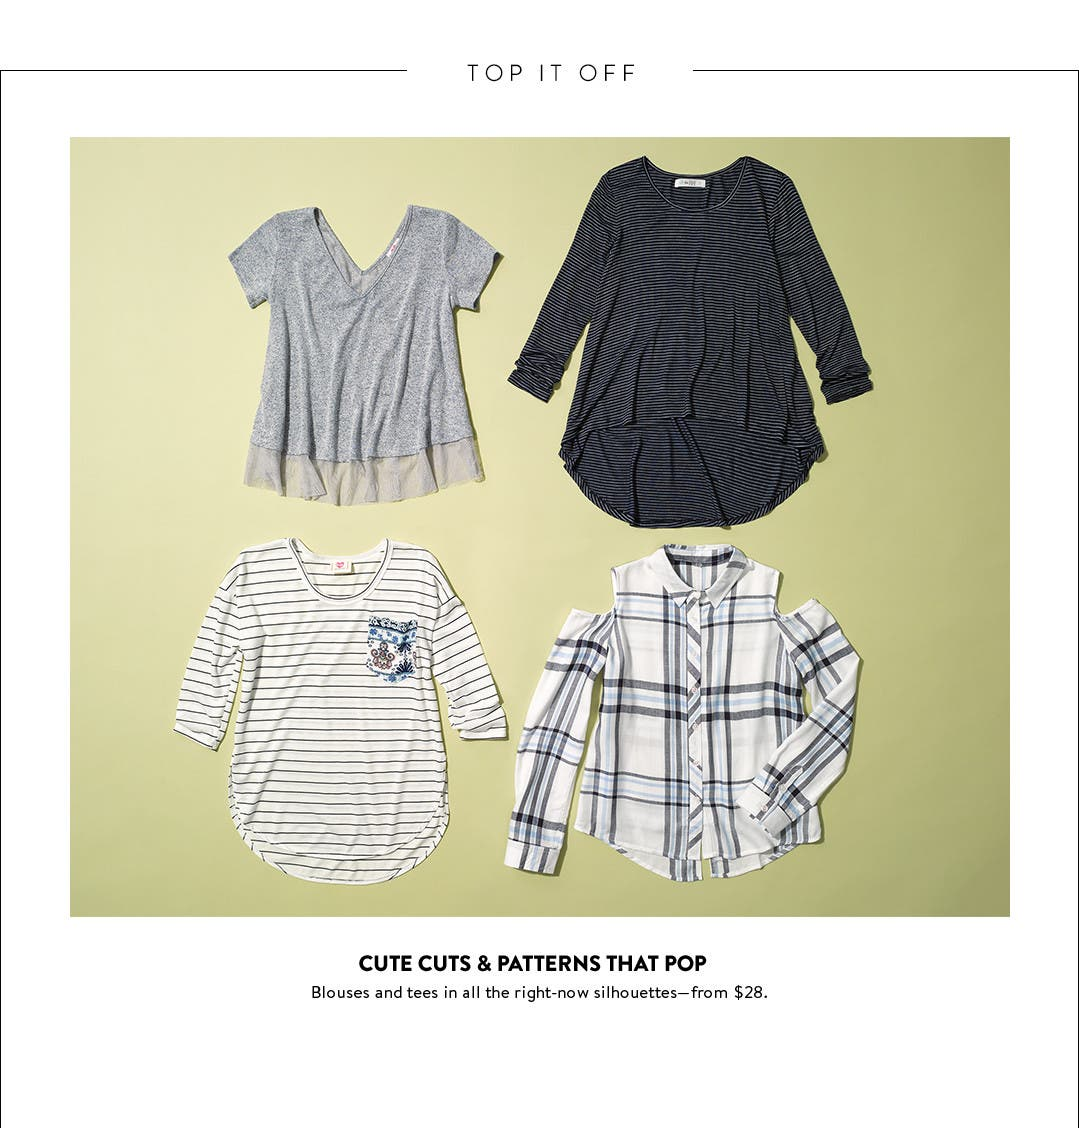 Cute cuts and patterns that pop in the latest tops and tees for girls.